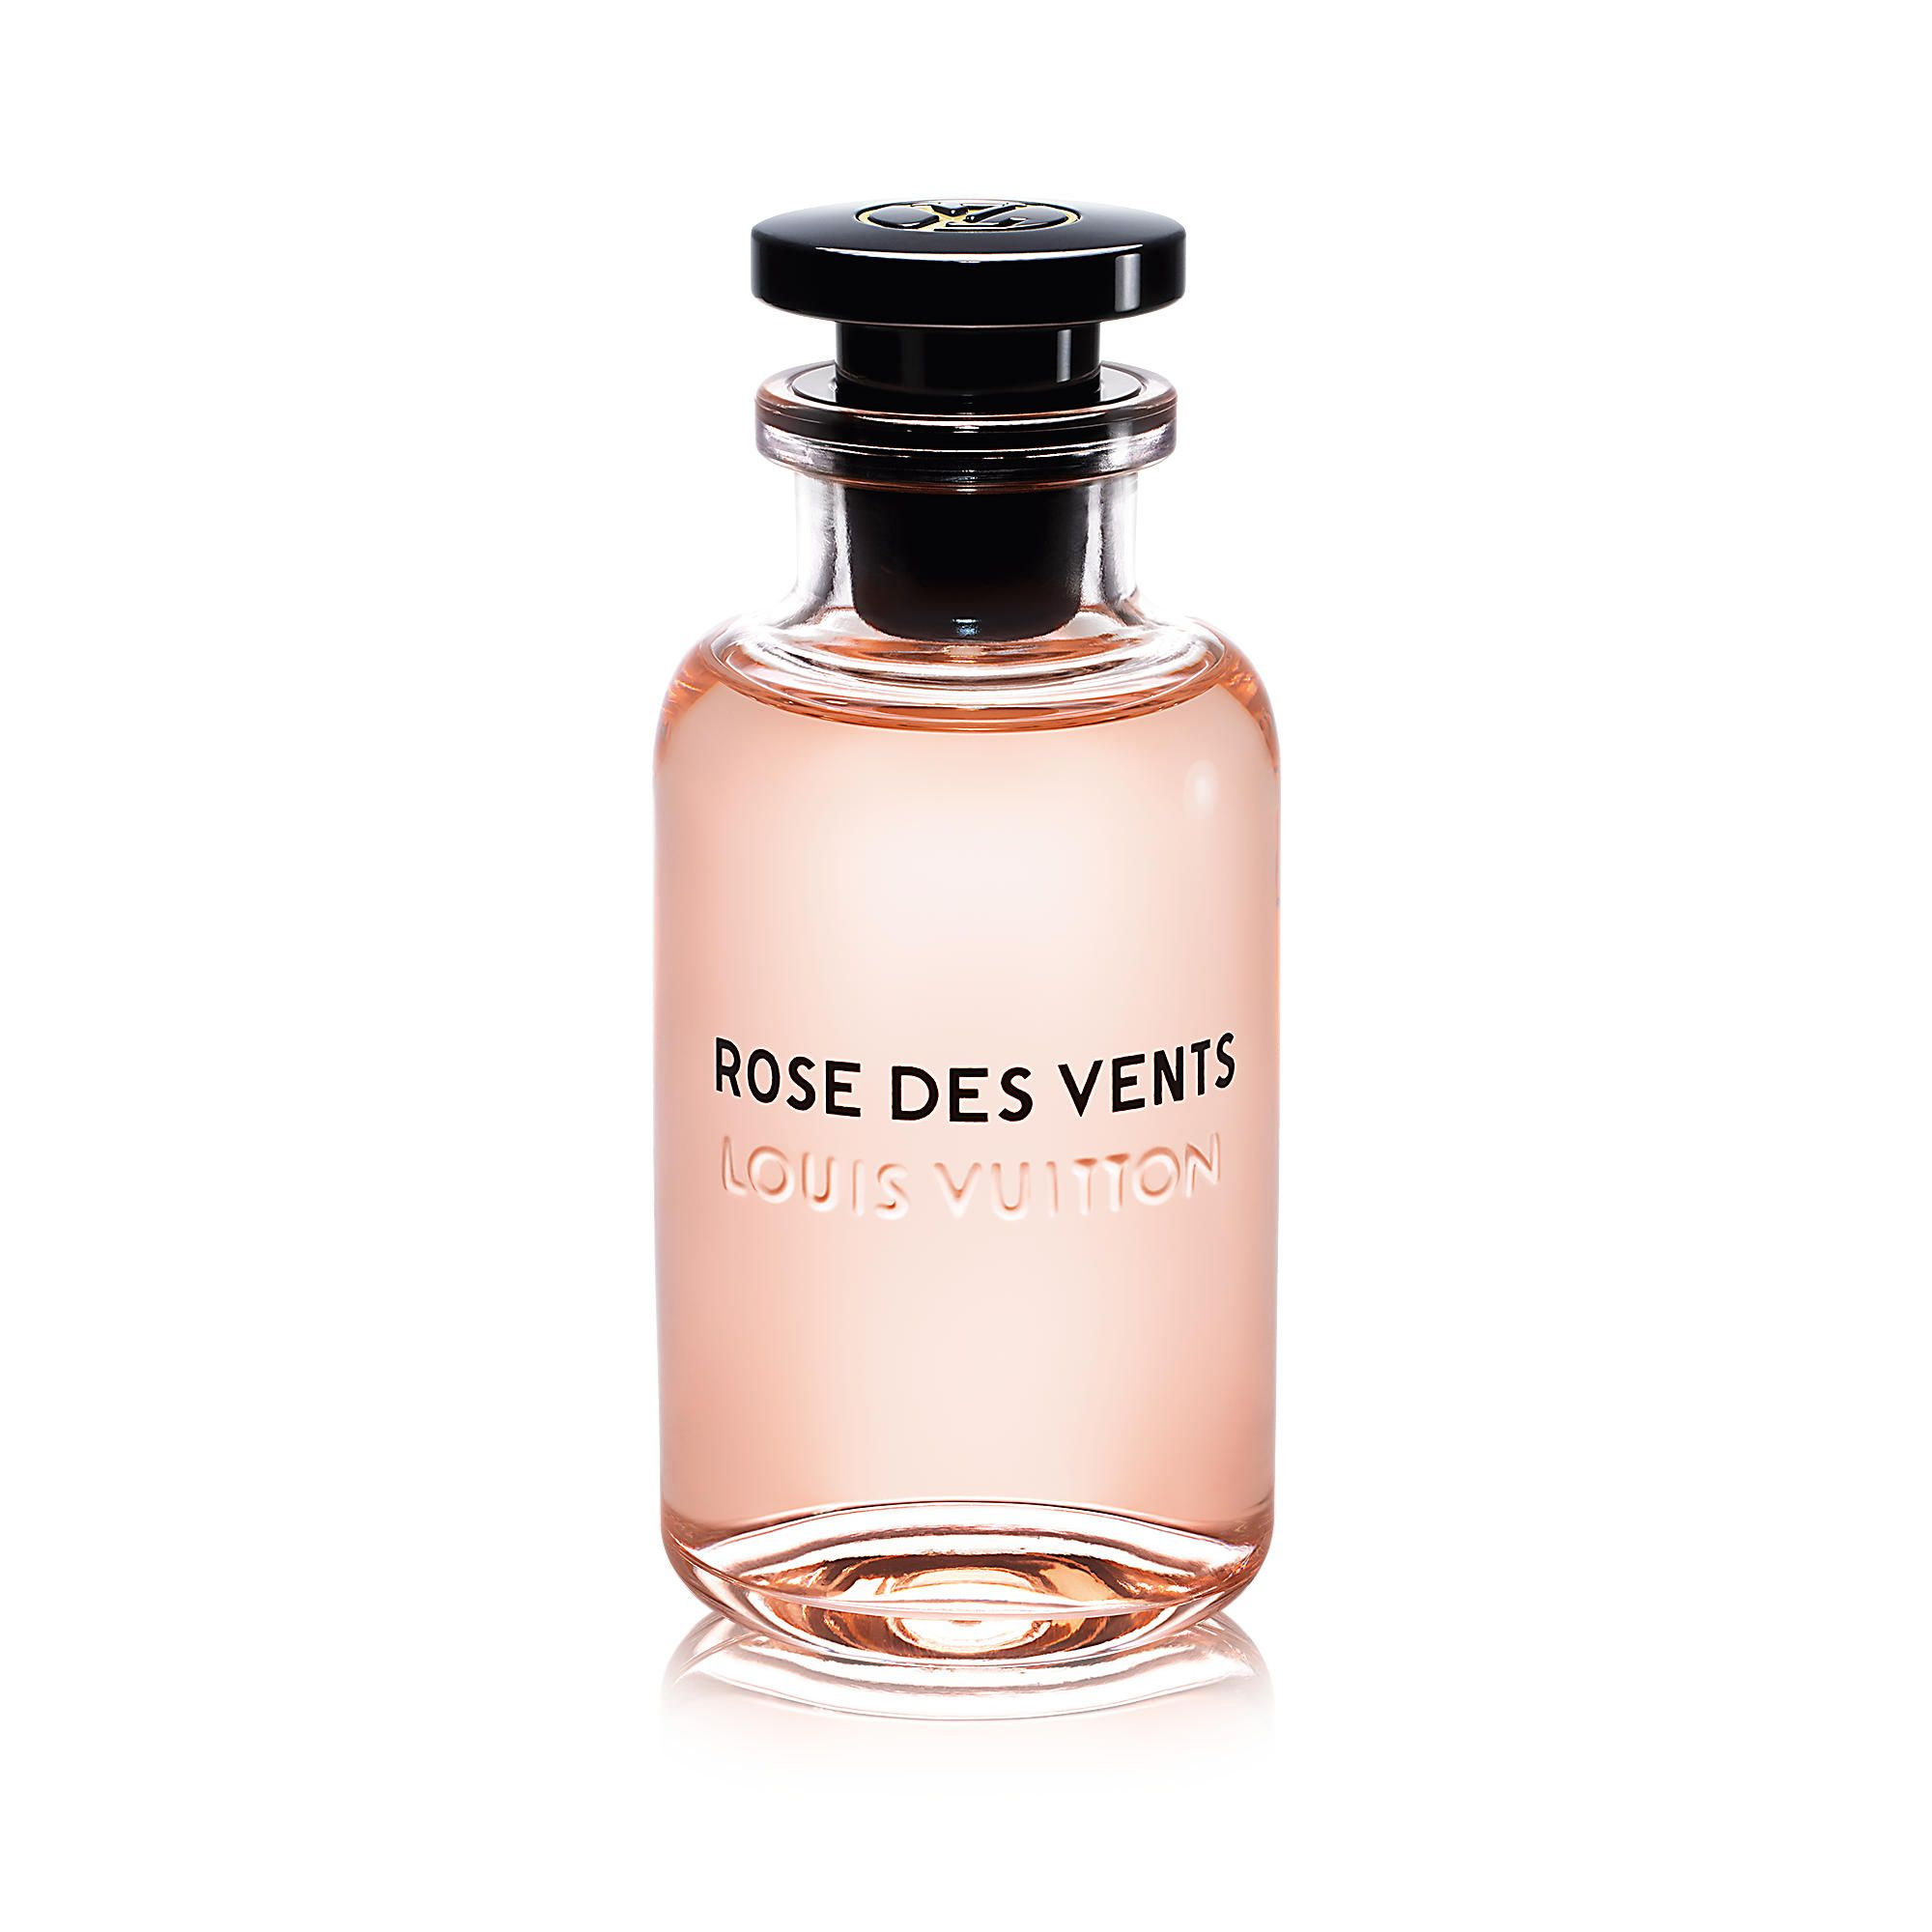 28++ Commodity book perfume sample ideas in 2021